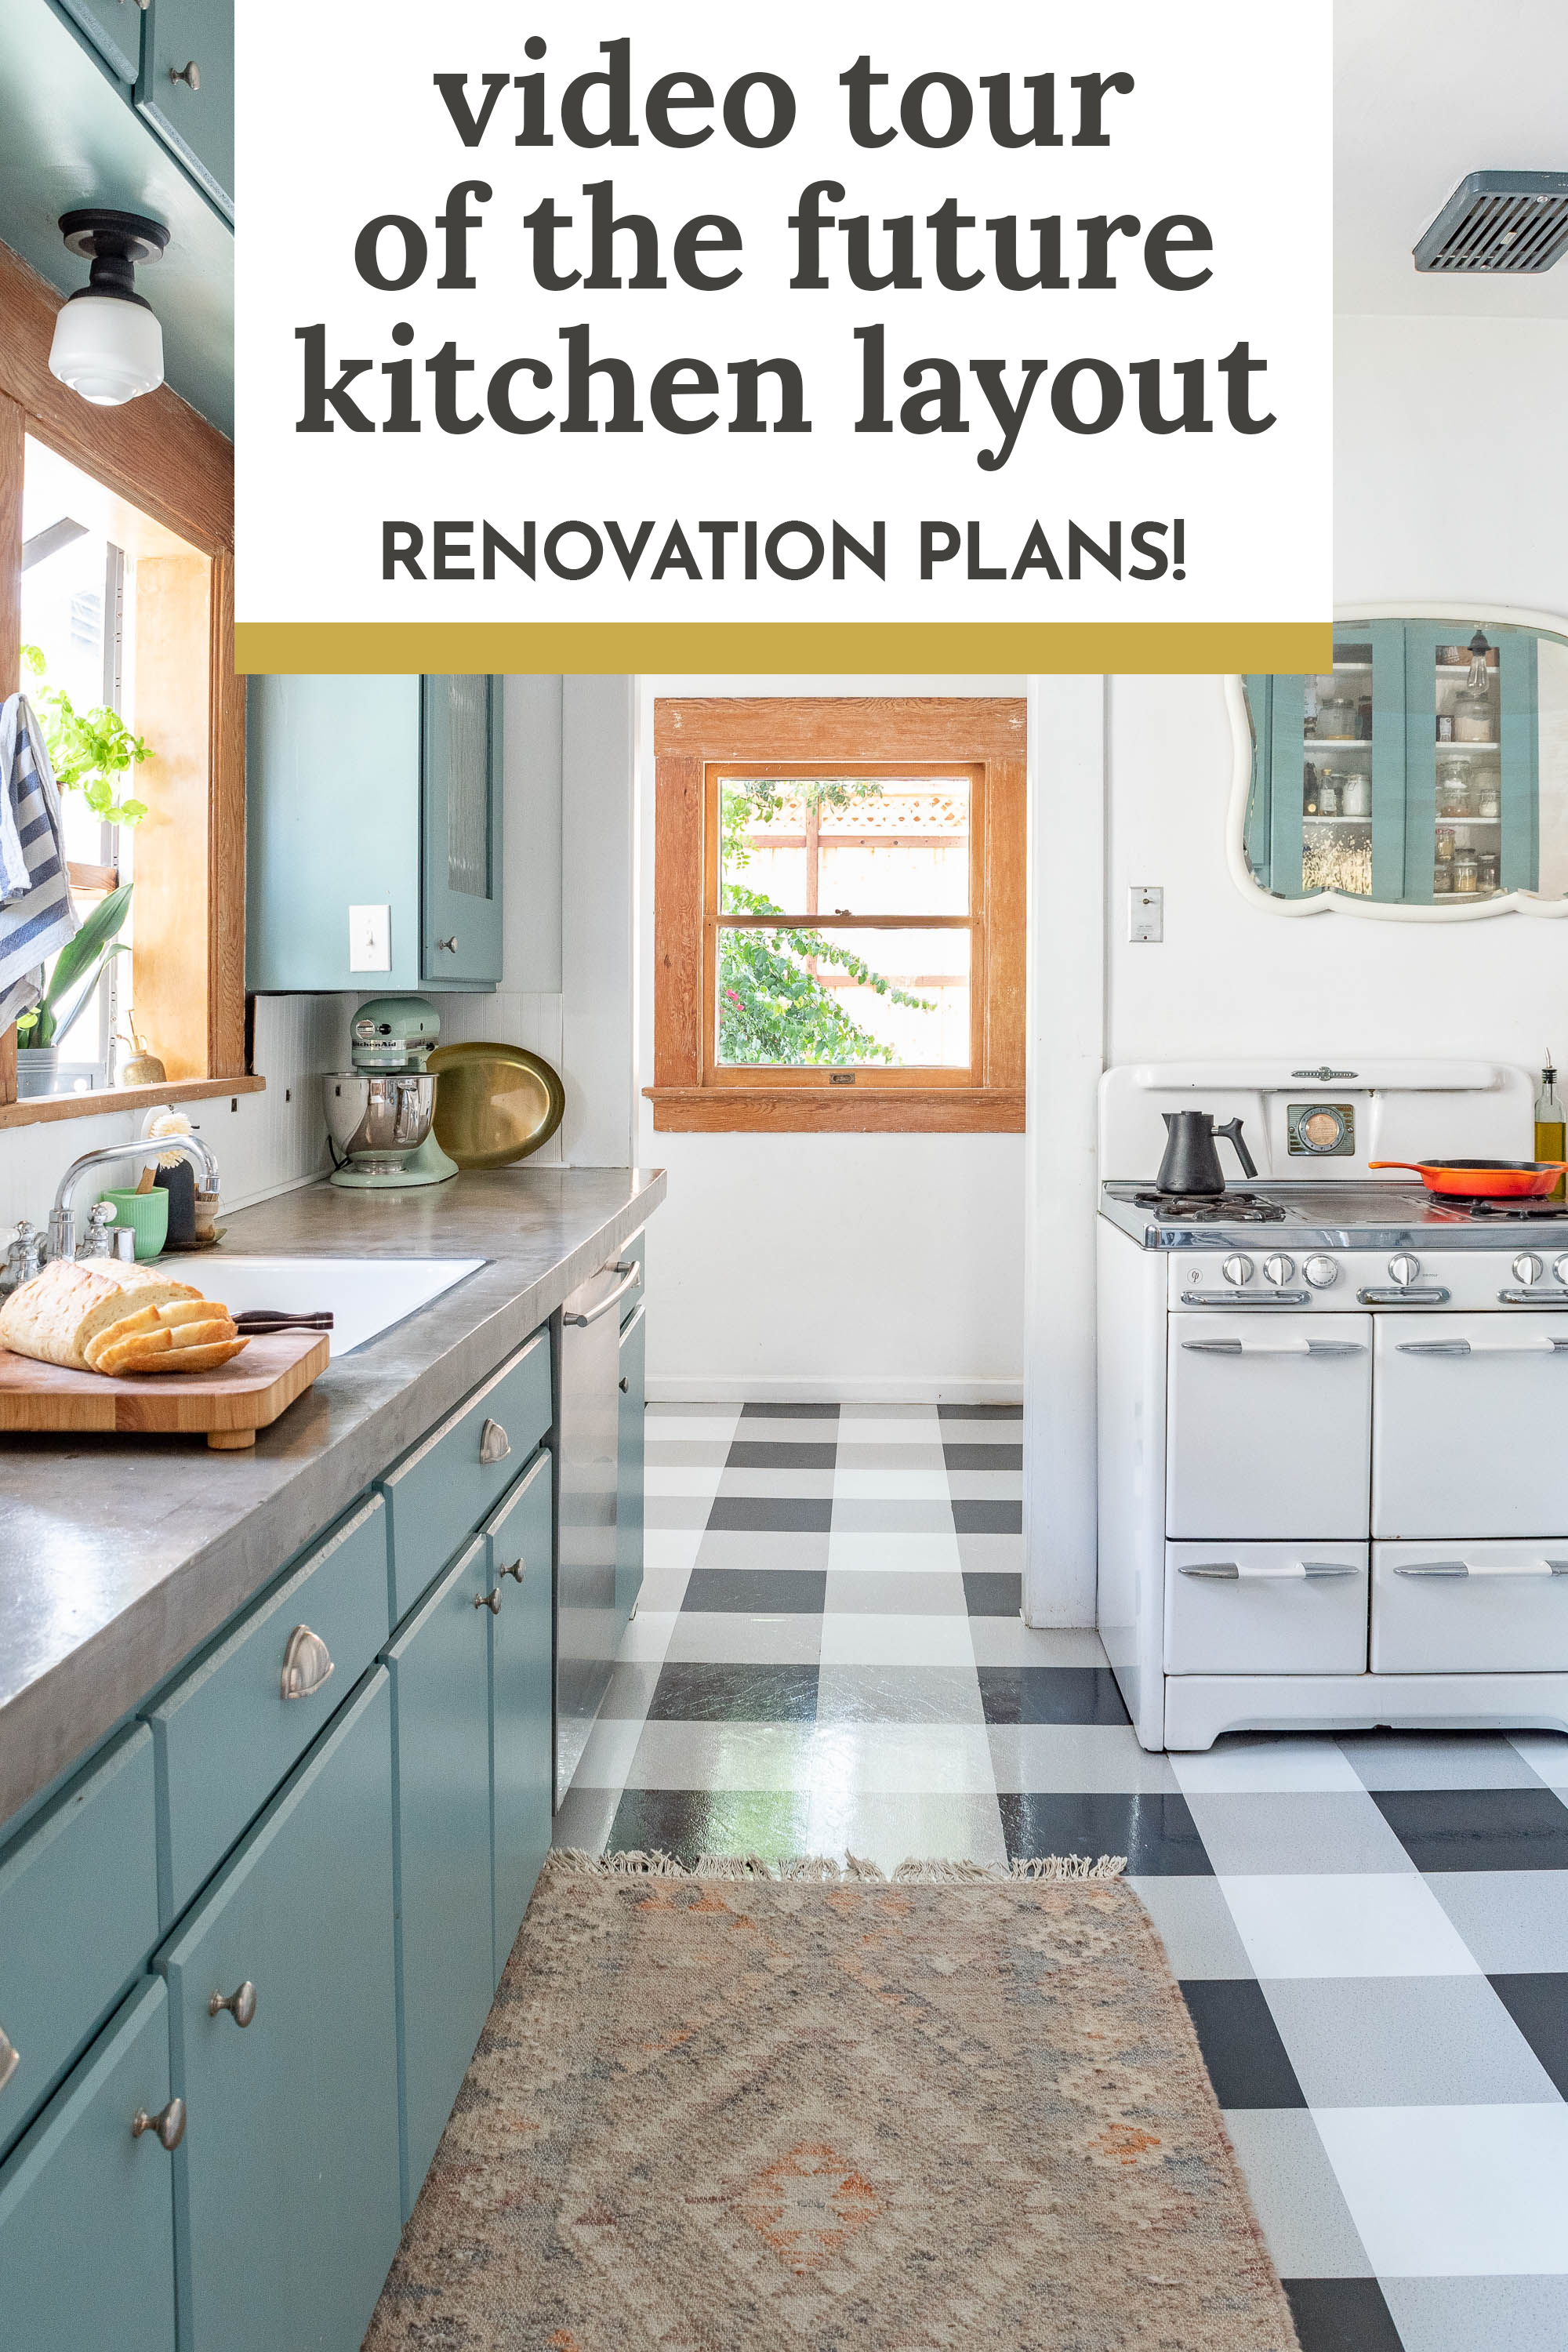 The Gold Hive Kitchen-A Video Tour of the future layout and floor plan for the upcoming kitchen and bathroom renovation.jpg